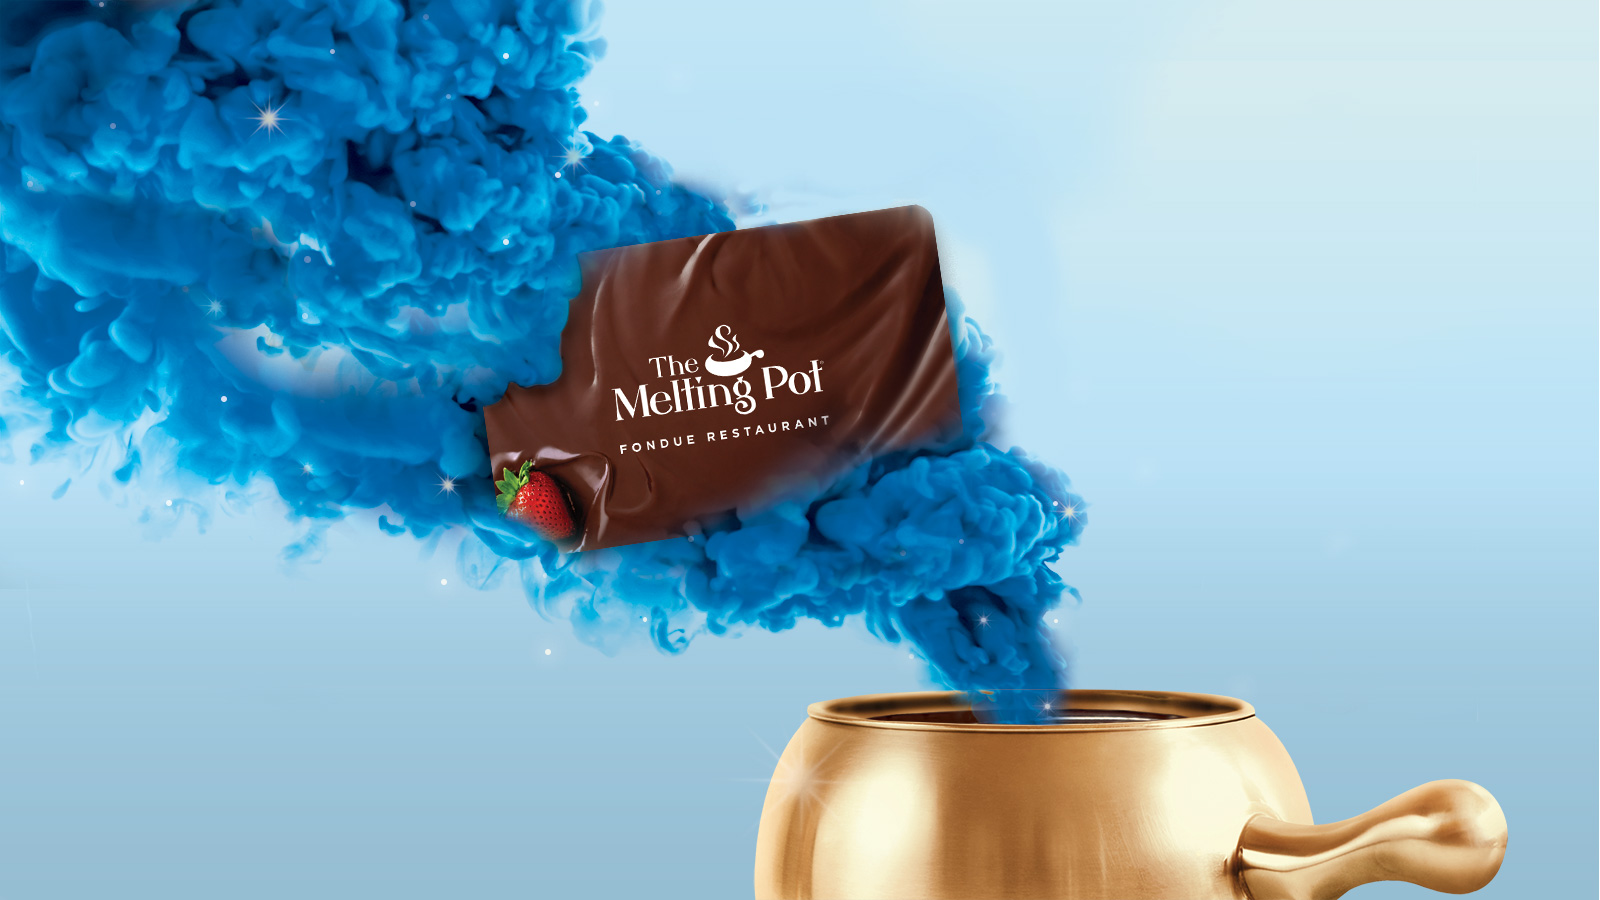 Give the gift of fondue with Gift Cards to The Melting Pot. Available in amounts of $25, $50, $75 and $